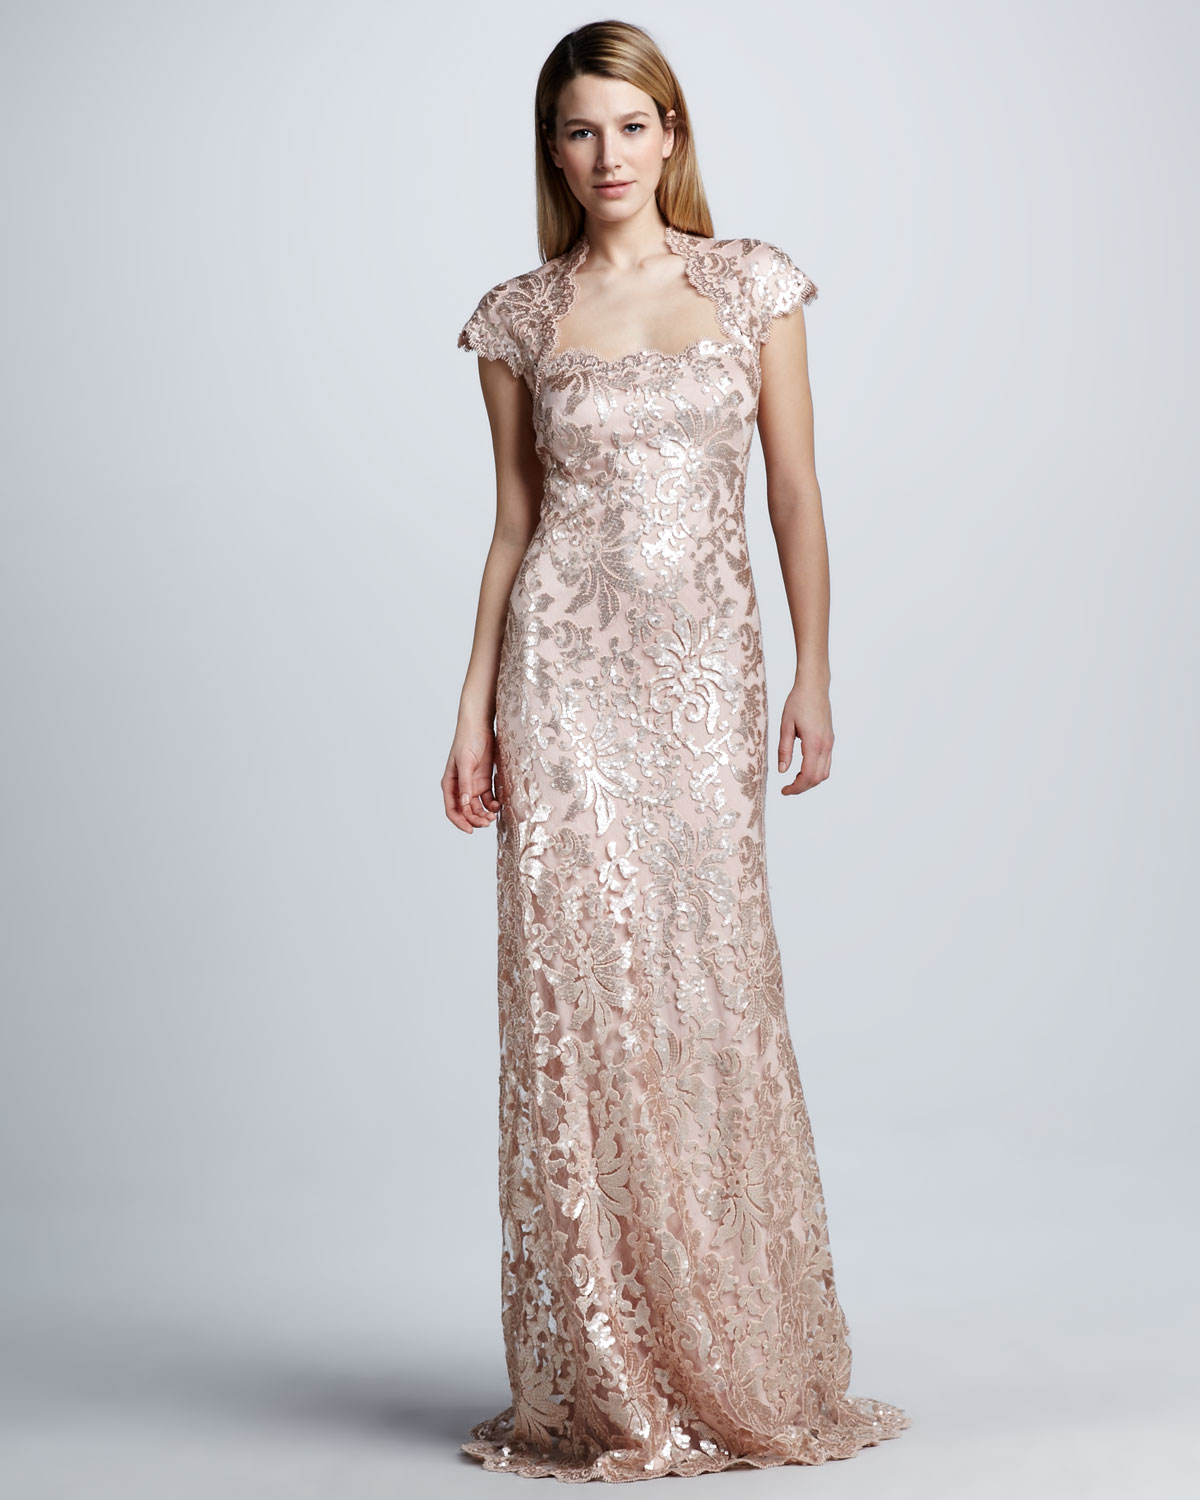 Lyst - Tadashi Shoji Sequined Lace Capsleeve Gown in Pink